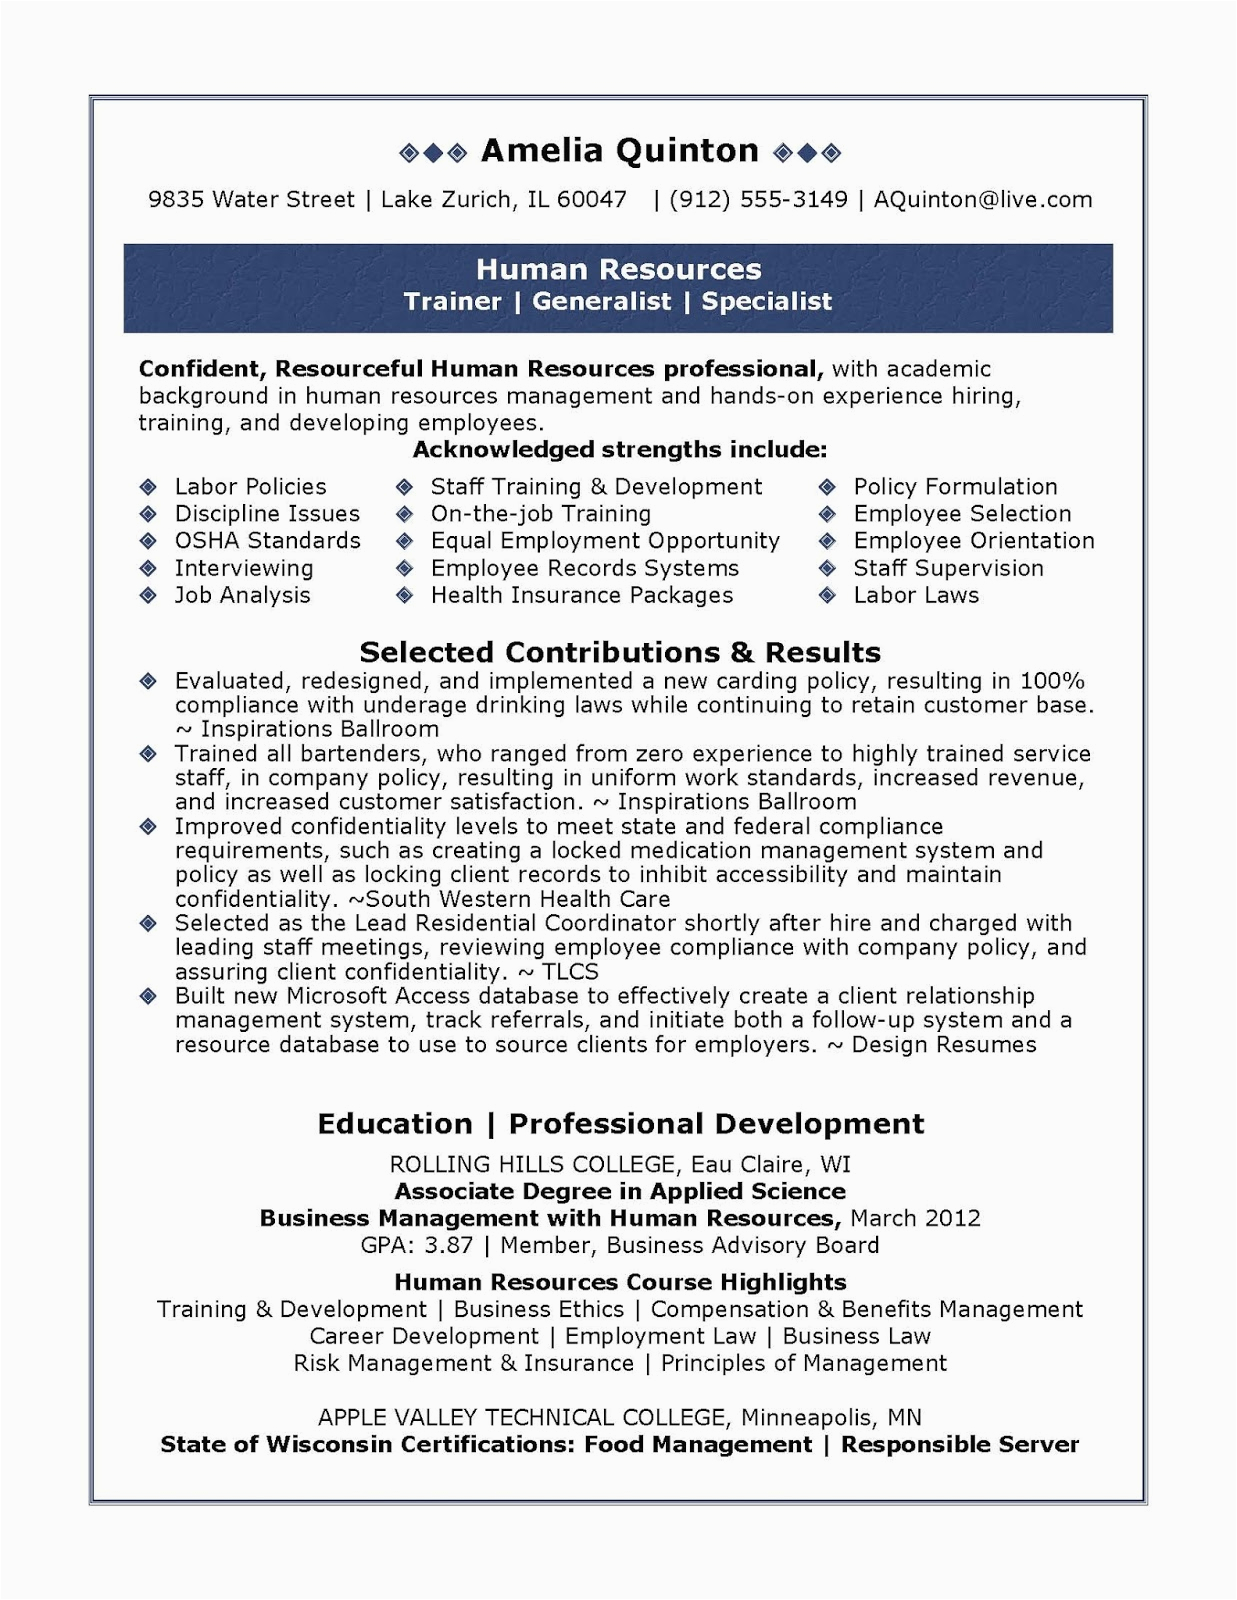 Resume Sample for Human Resource Position Sample Human Resources Resume